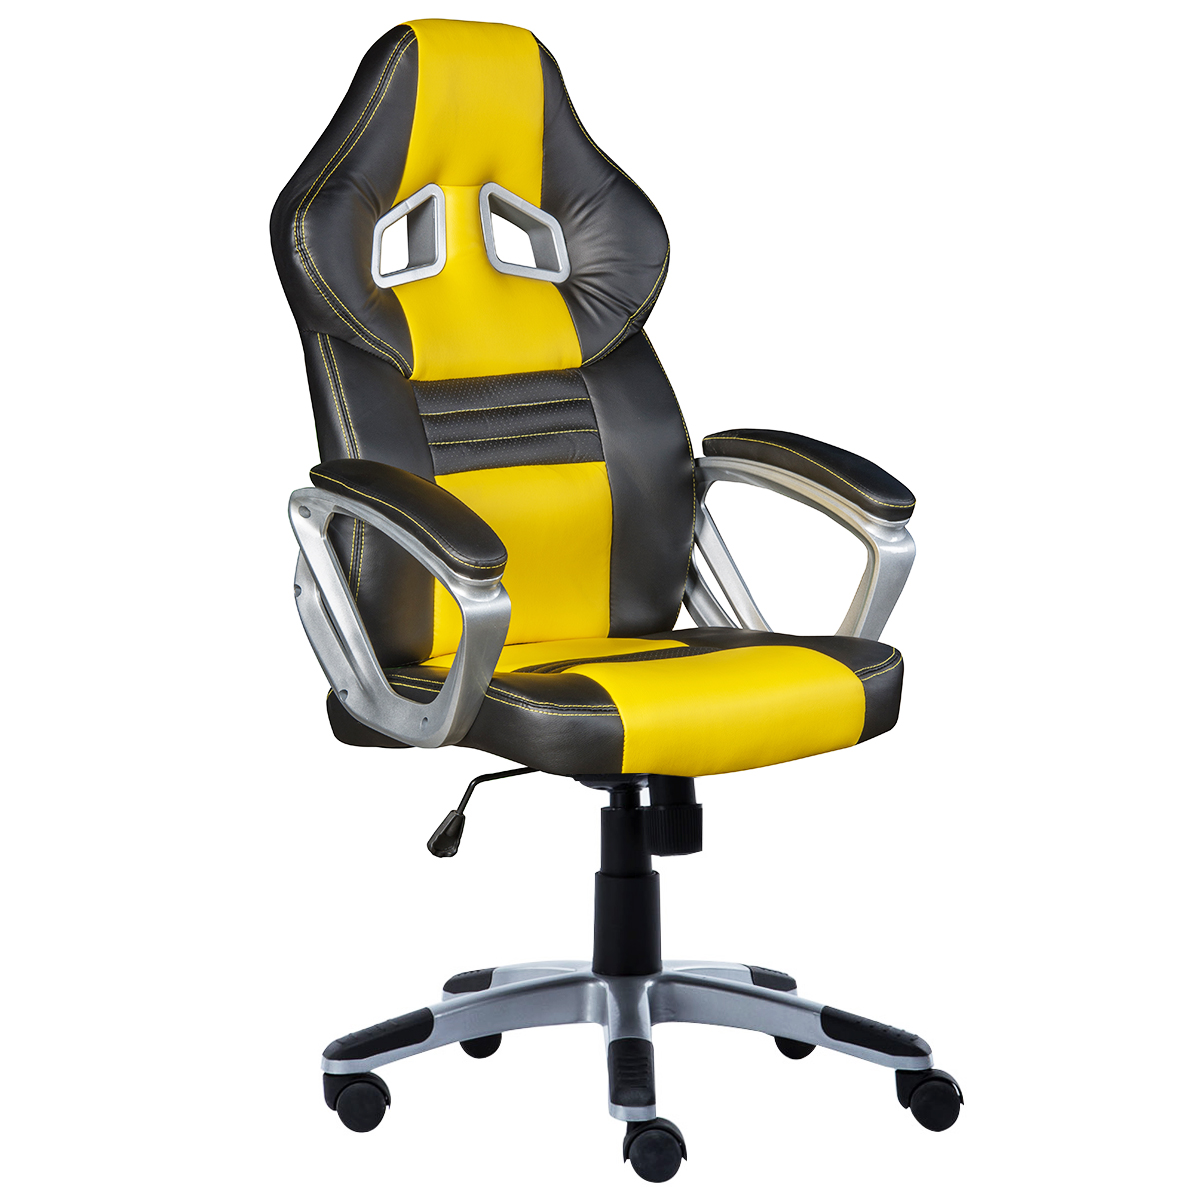 High Quality Office Chair Swivel Chair Synthetic Leather Computer Chair Lacework Lifting  Armchair Gaming Chair Free Shipping